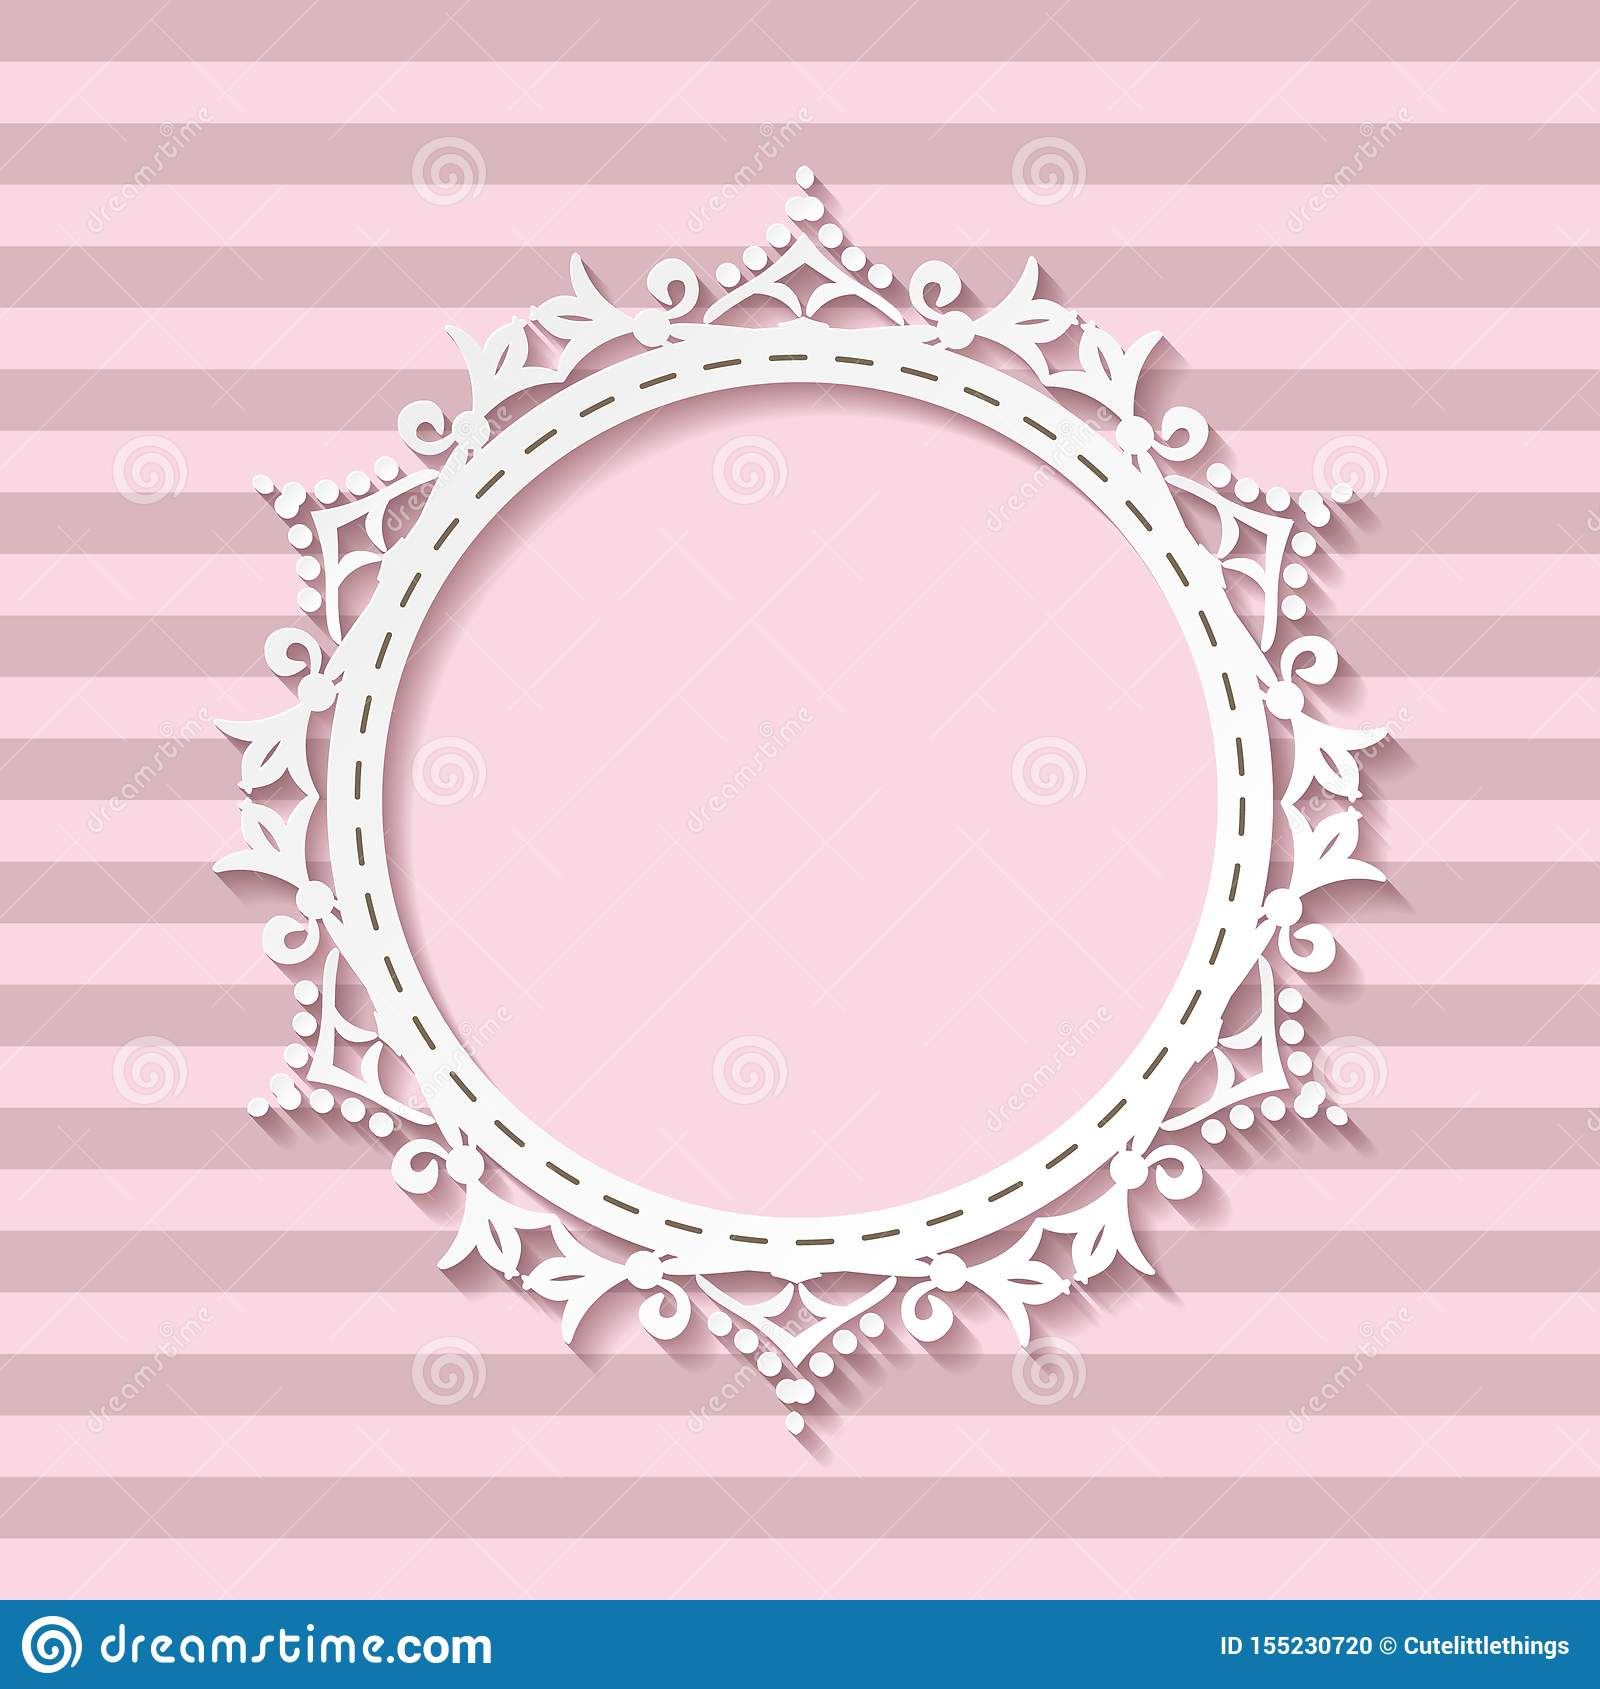 Cute Paper Cut Photo Frame For Baby Girl On Striped Seamless